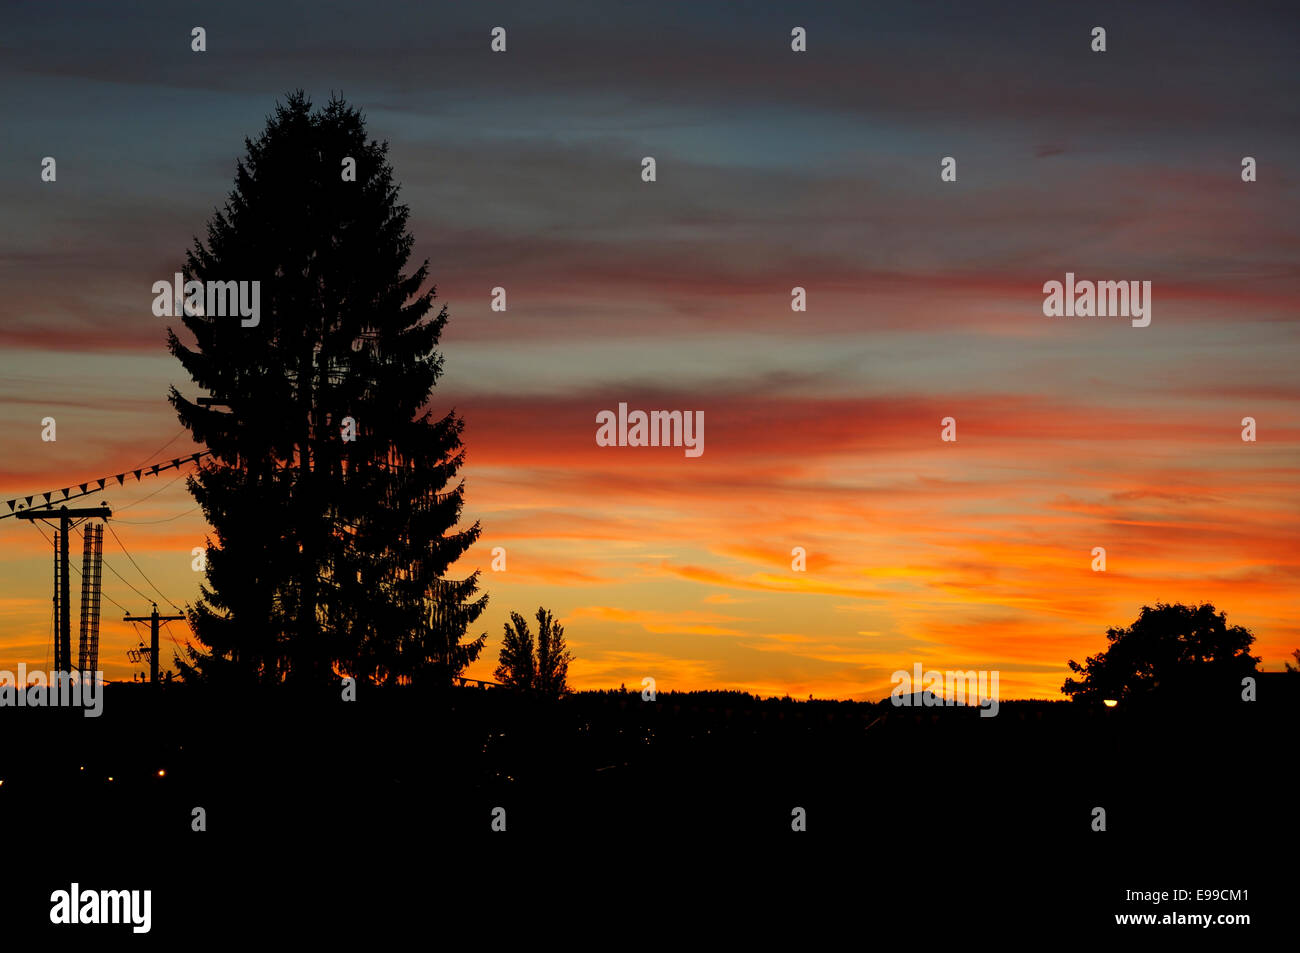 coniferous-tree-silhouetted-by-the-setti